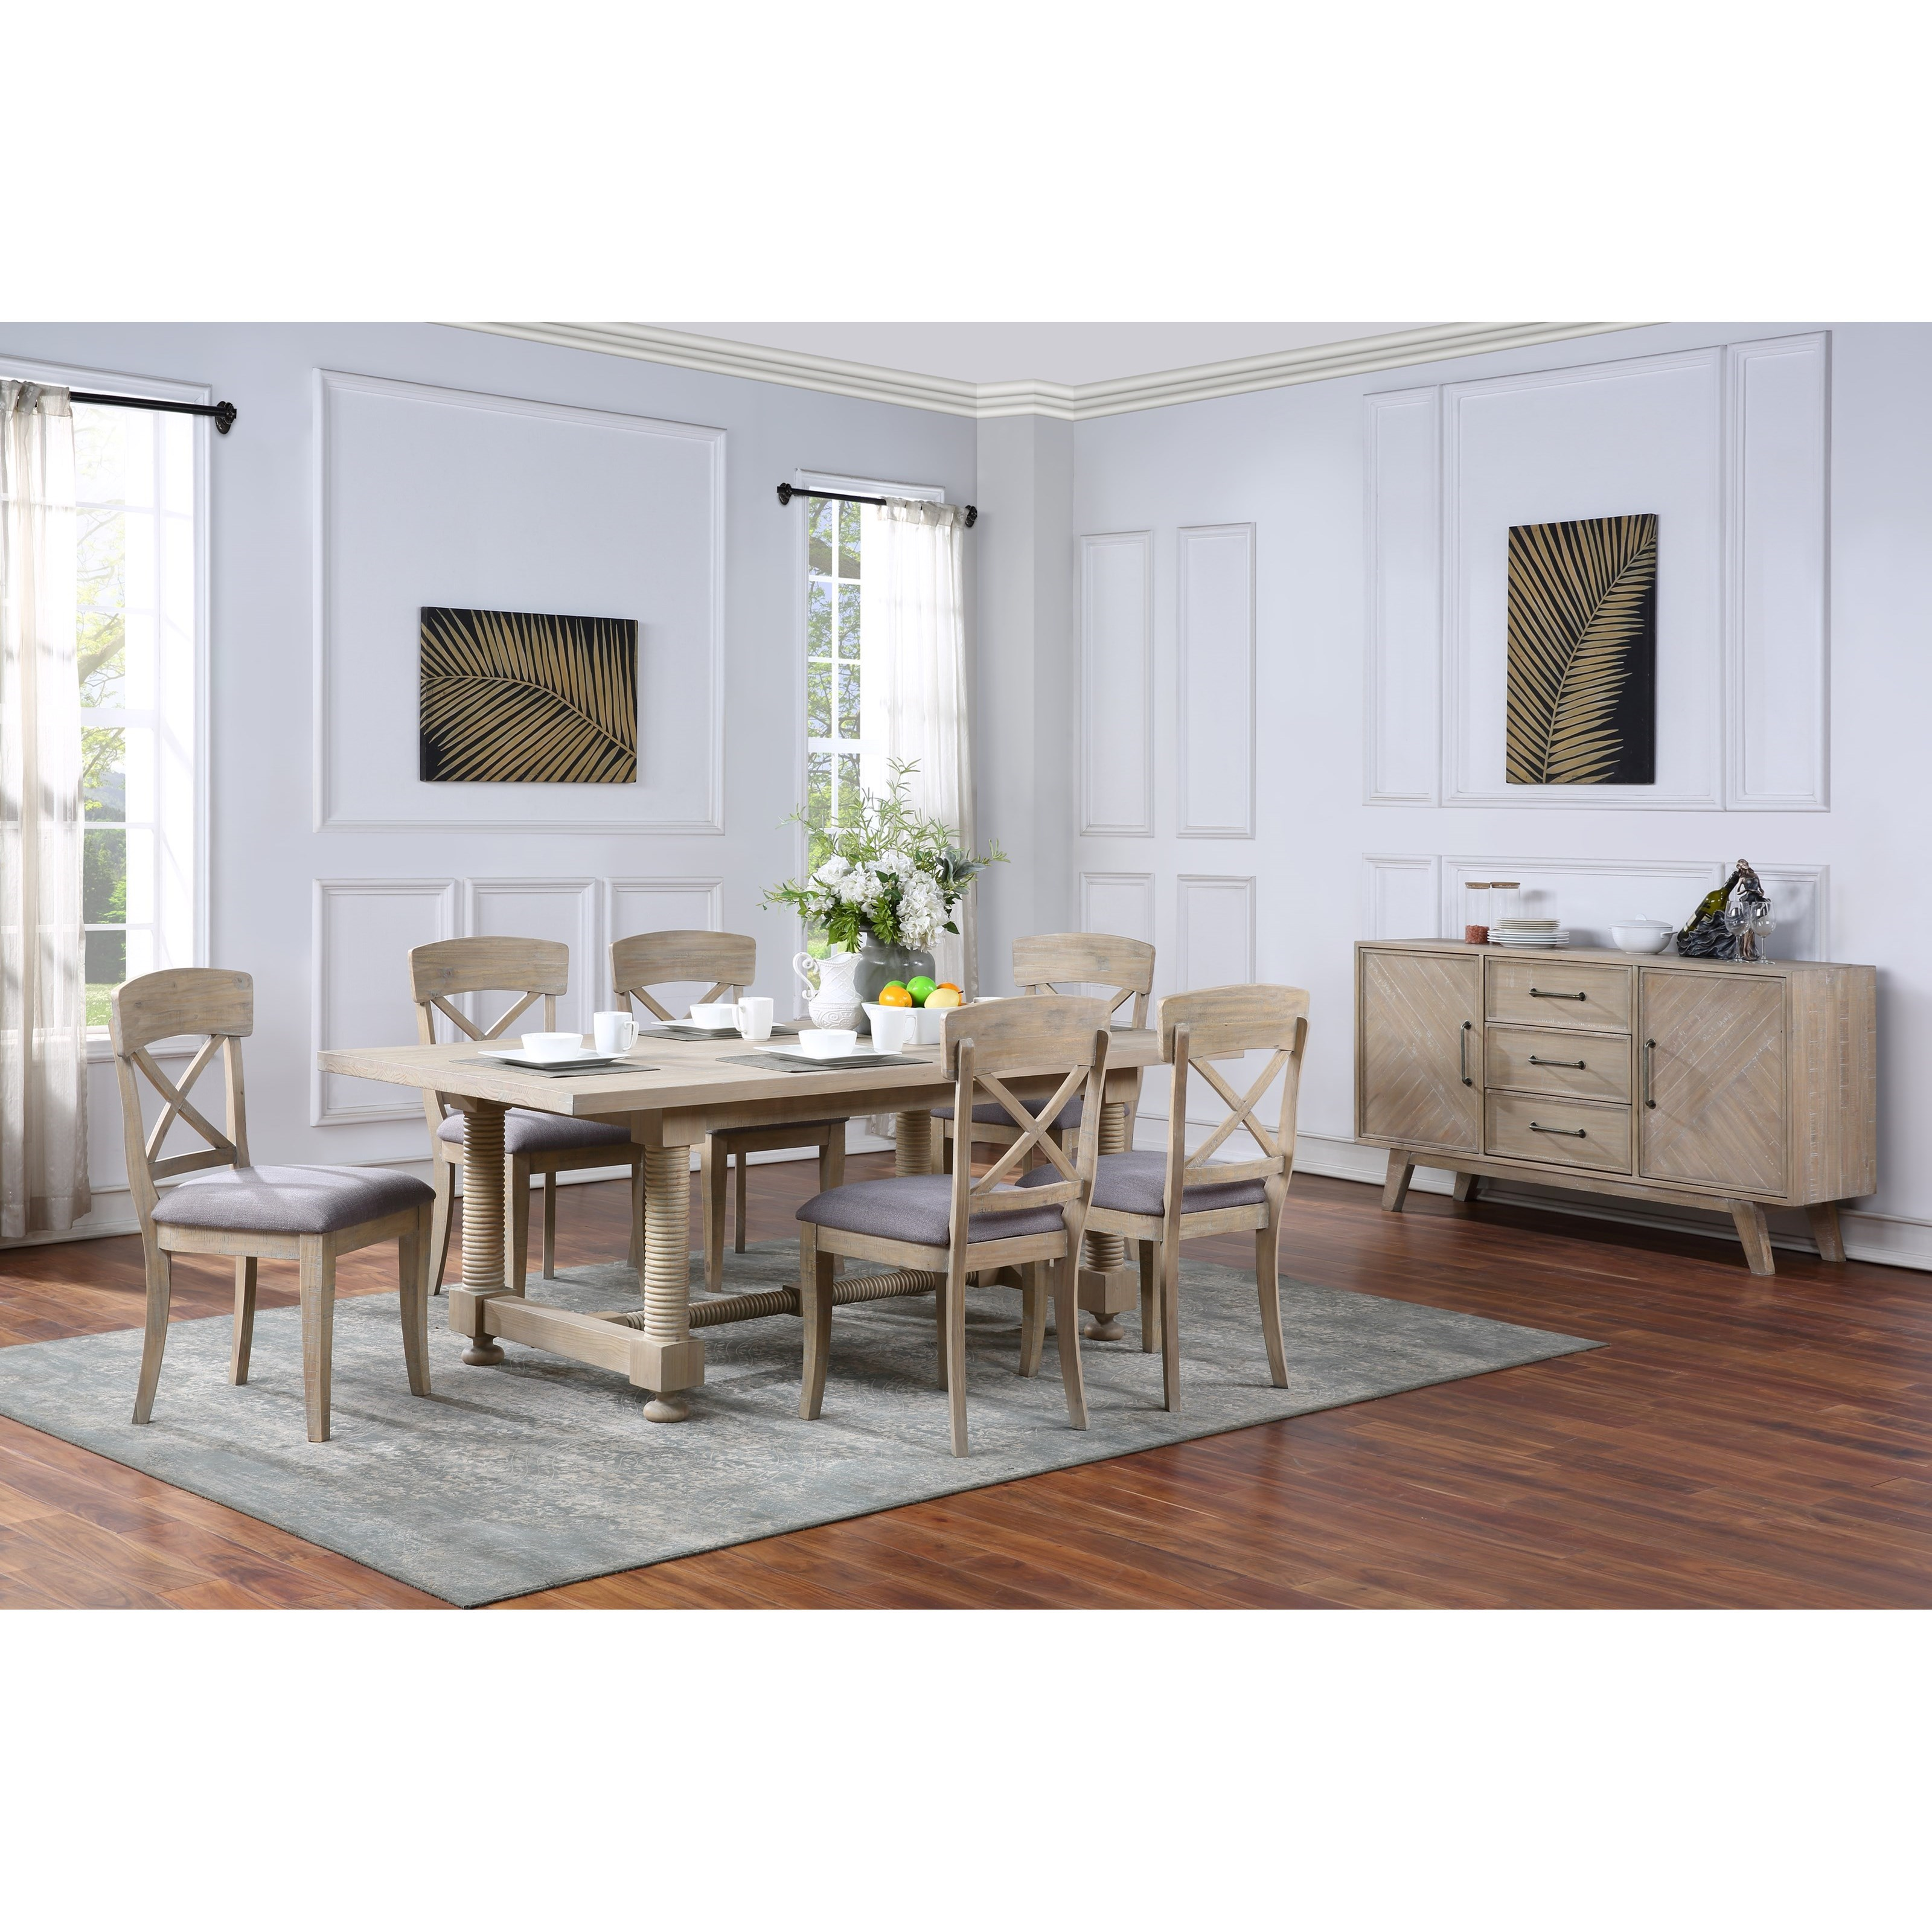 Barrister Dining Group by Coast to Coast Imports at Baer's Furniture